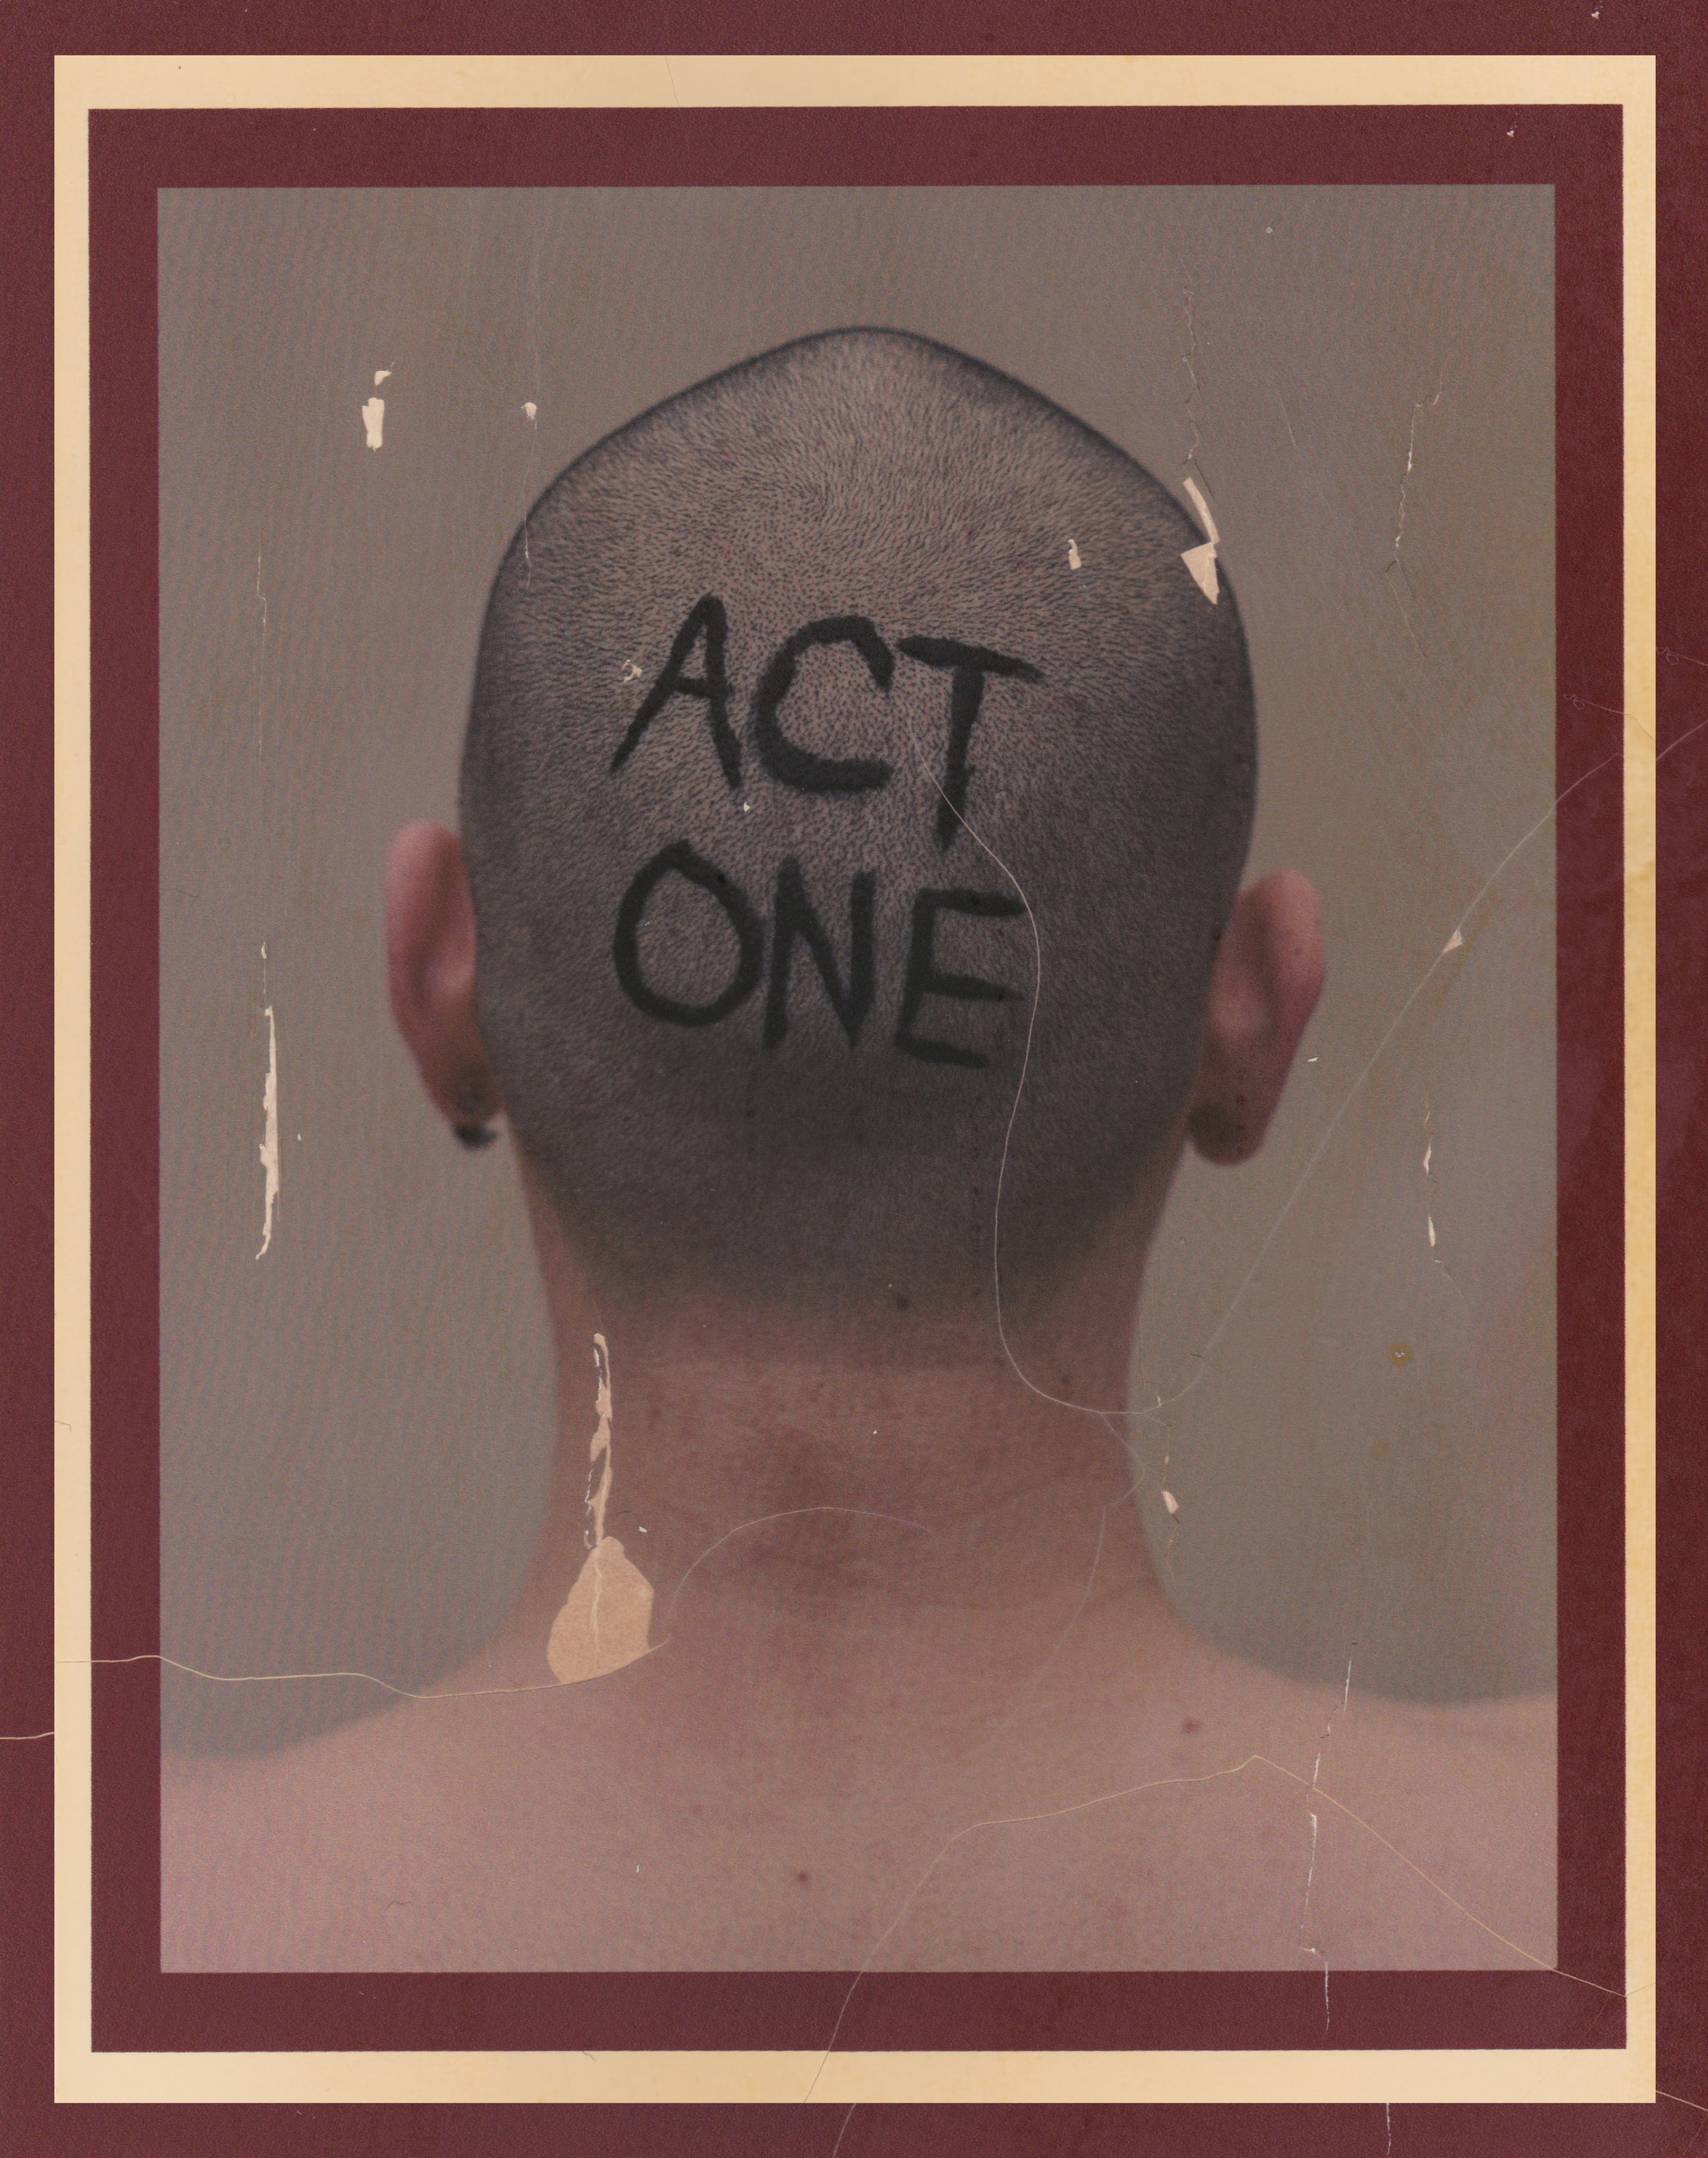 Act One , unknown  A personal project by Clinton Elliott exploring his journey of self discovery.  // loading